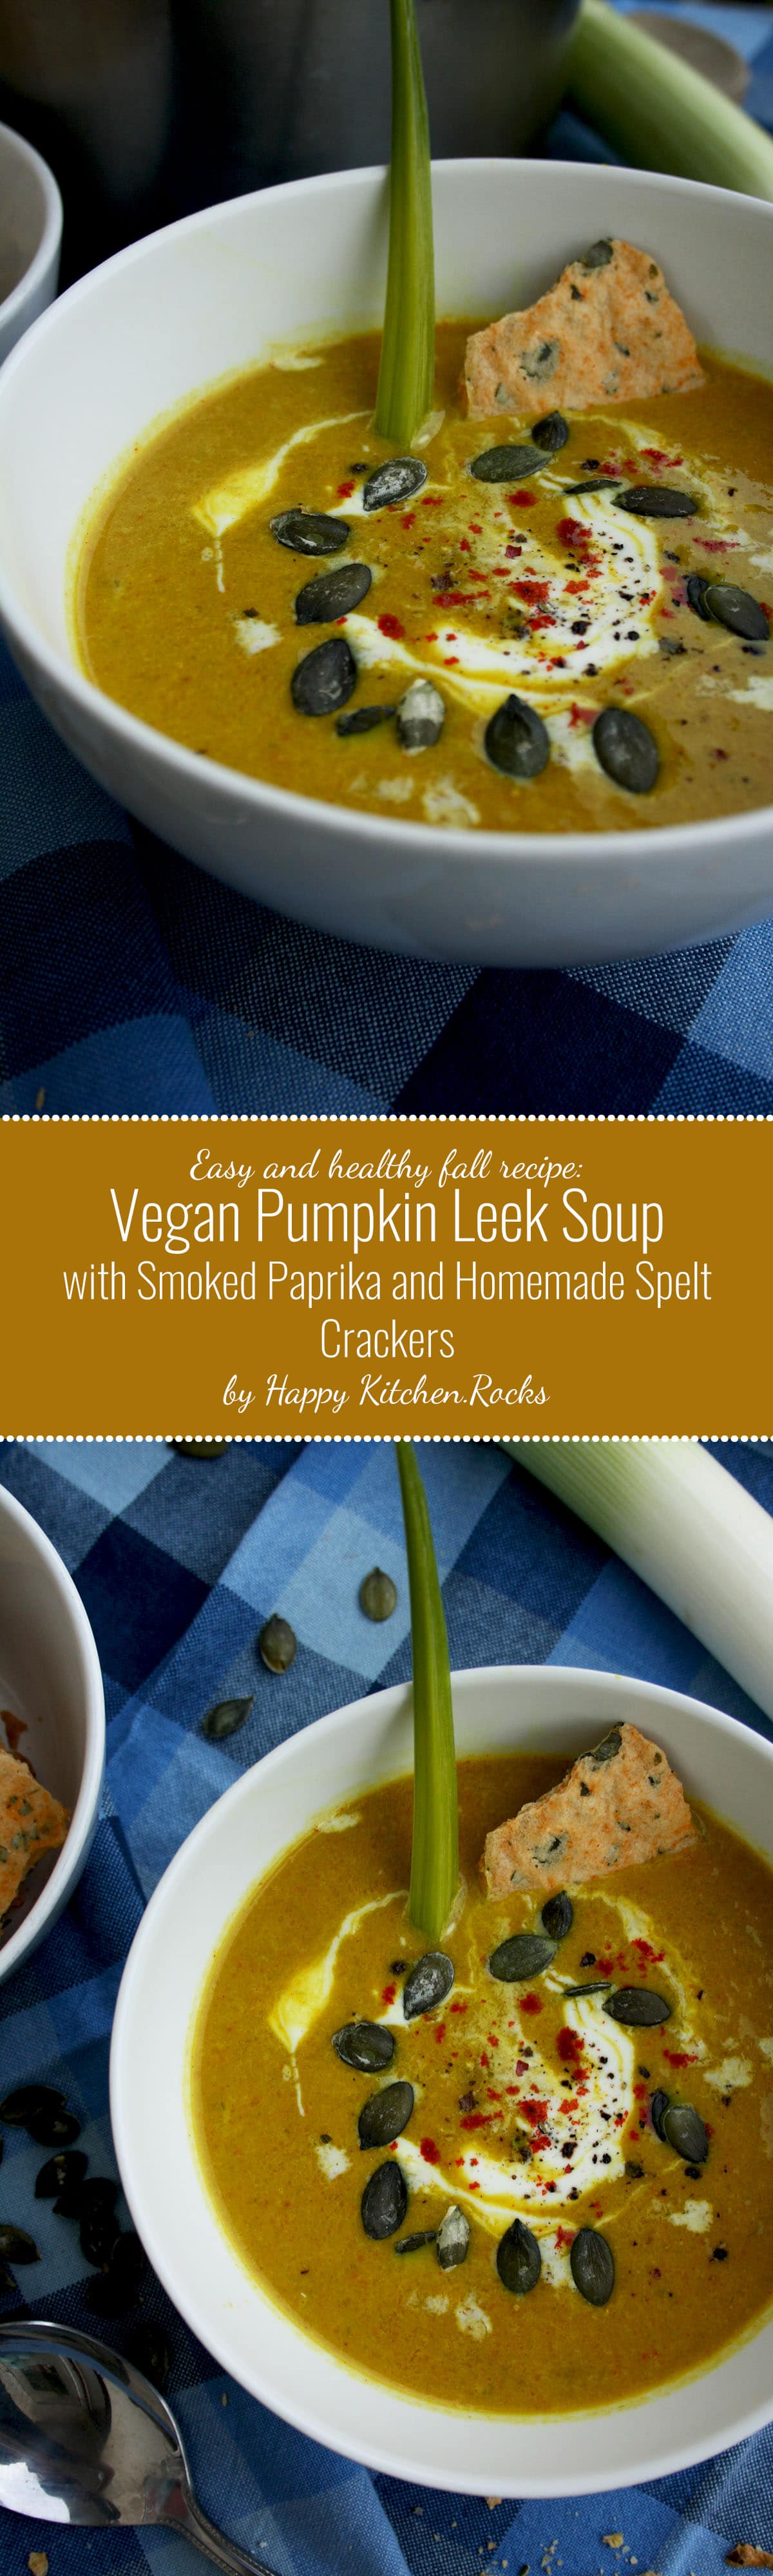 and flavorful autumn recipe: Pumpkin leek soup with smoked paprika ...